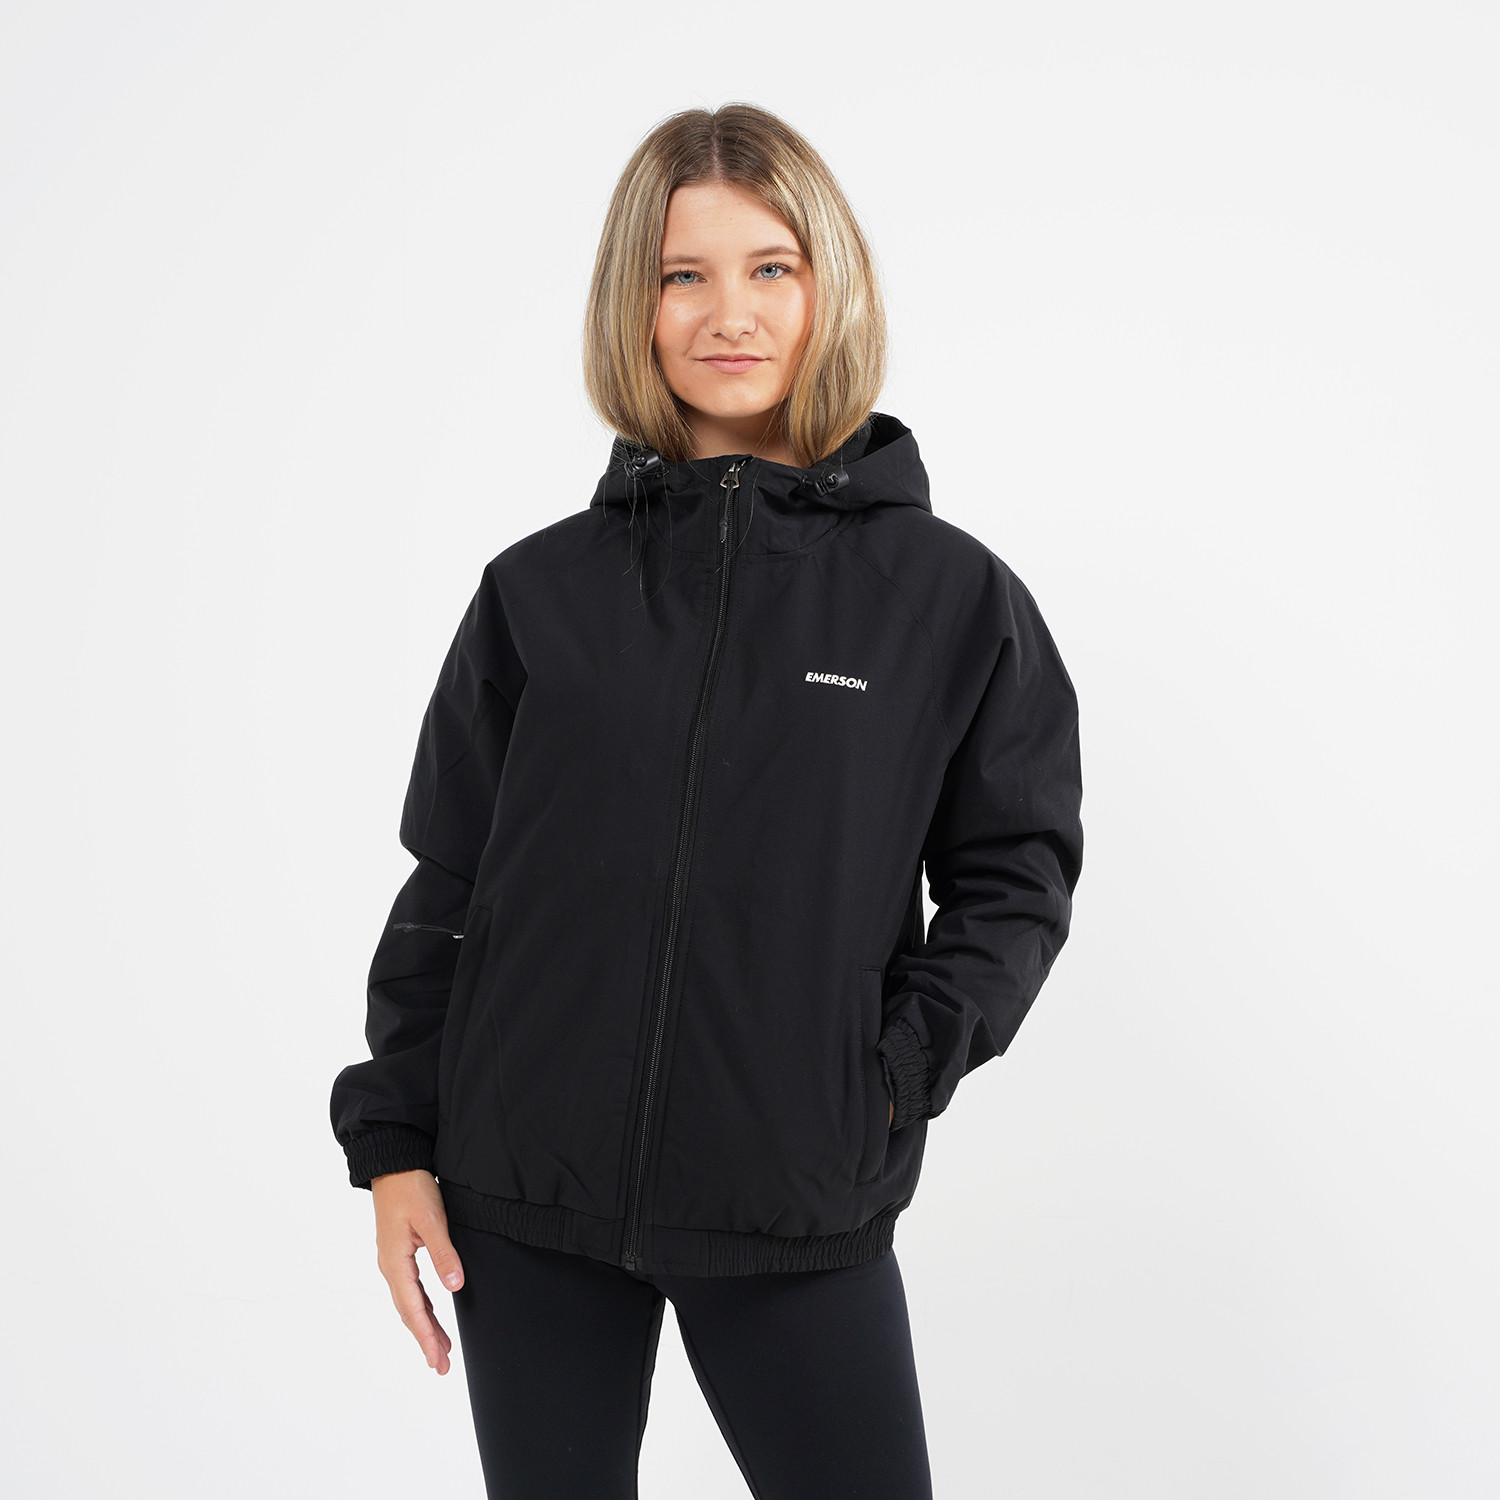 Emerson Women's Jacket with Hood (9000054066_45949)